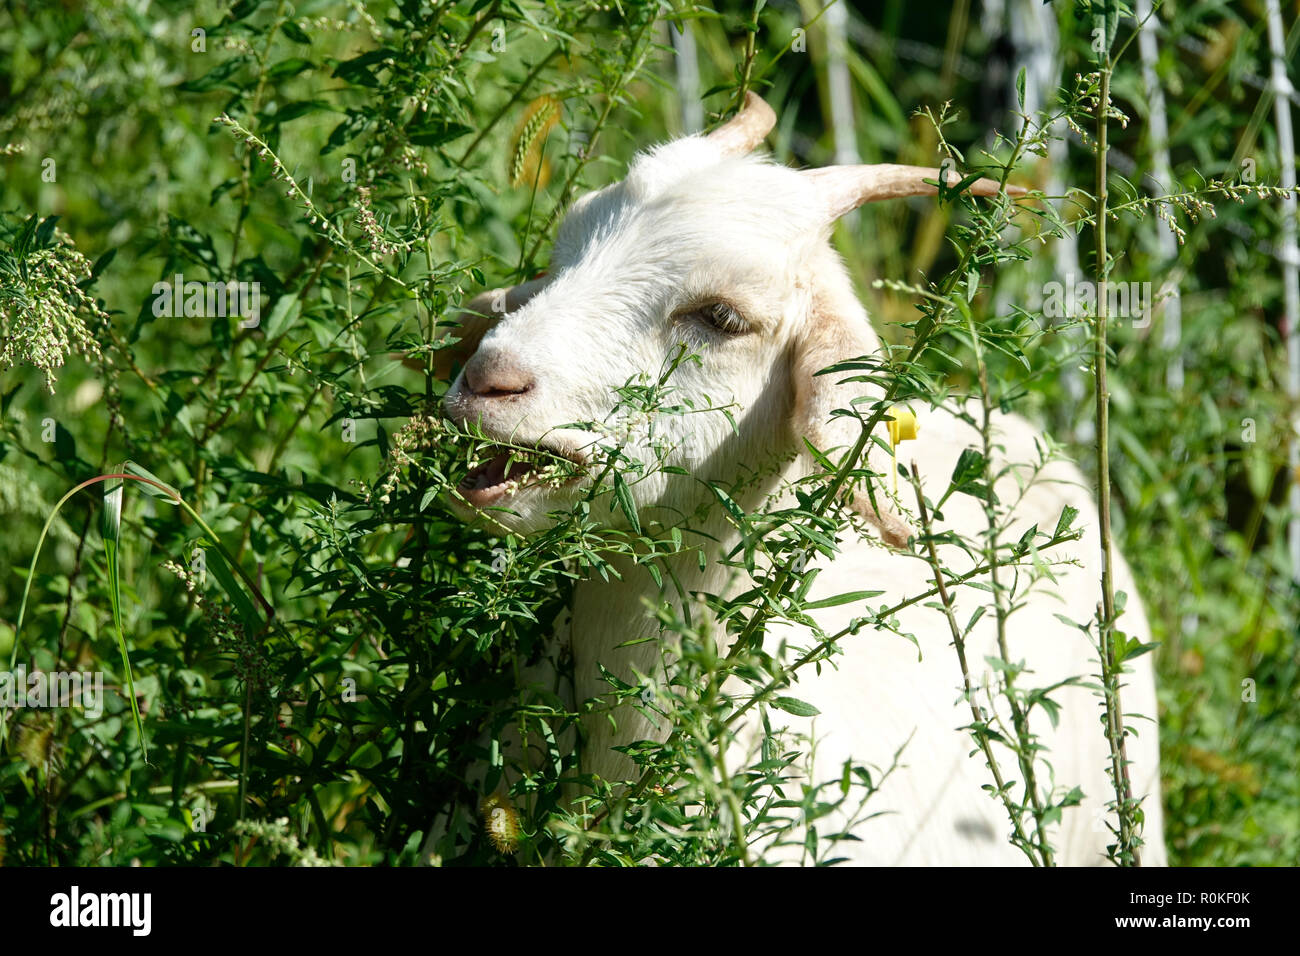 One White Goat Eating in the Woods Stock Photo